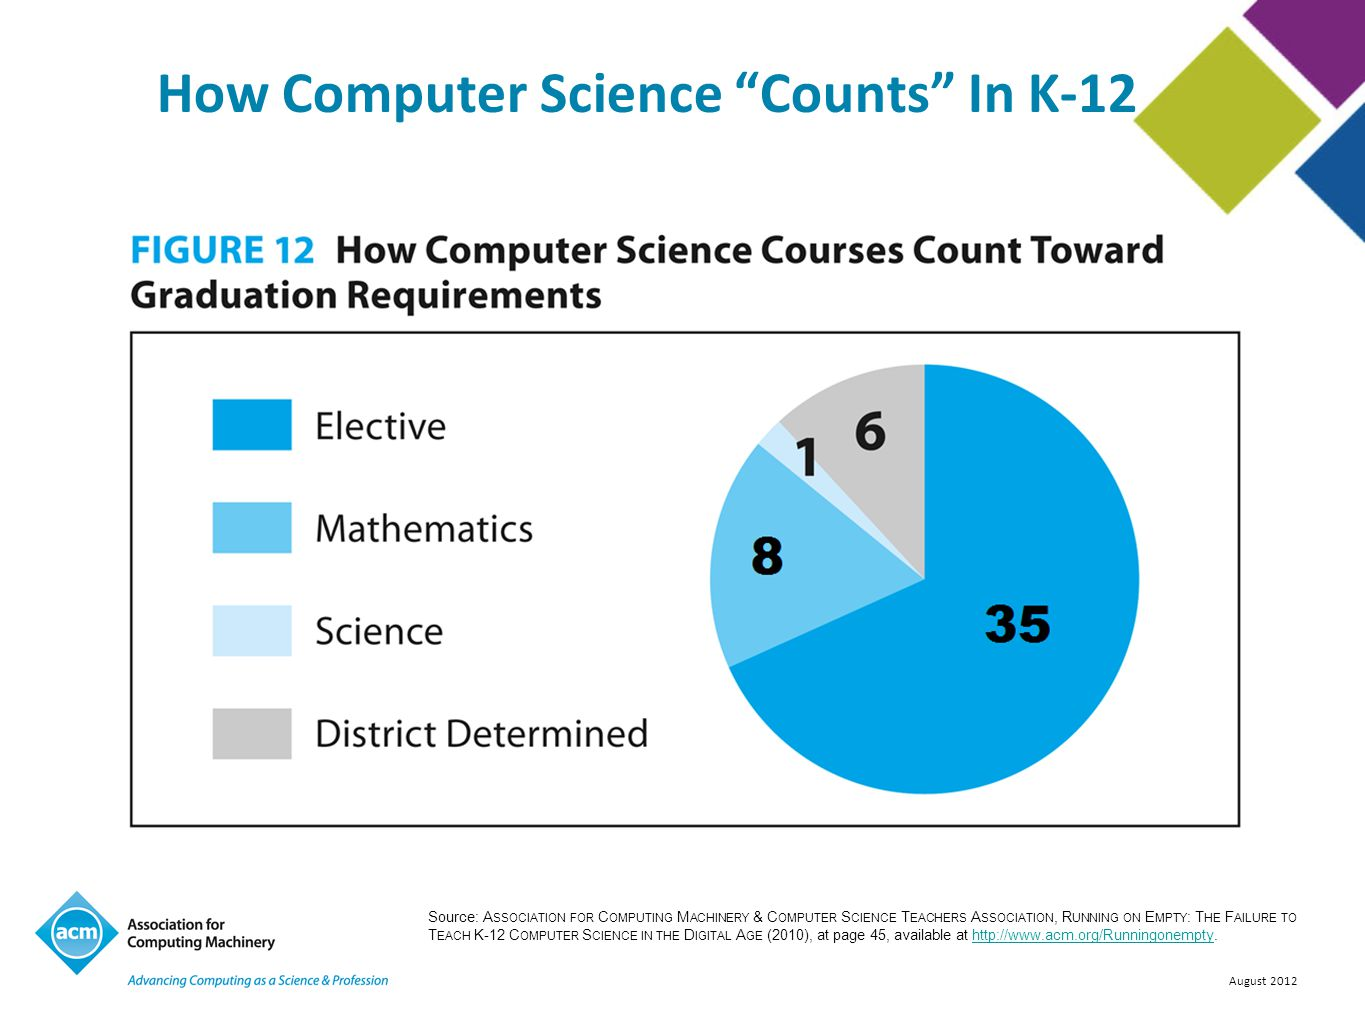 How Computer Science Counts In K-12